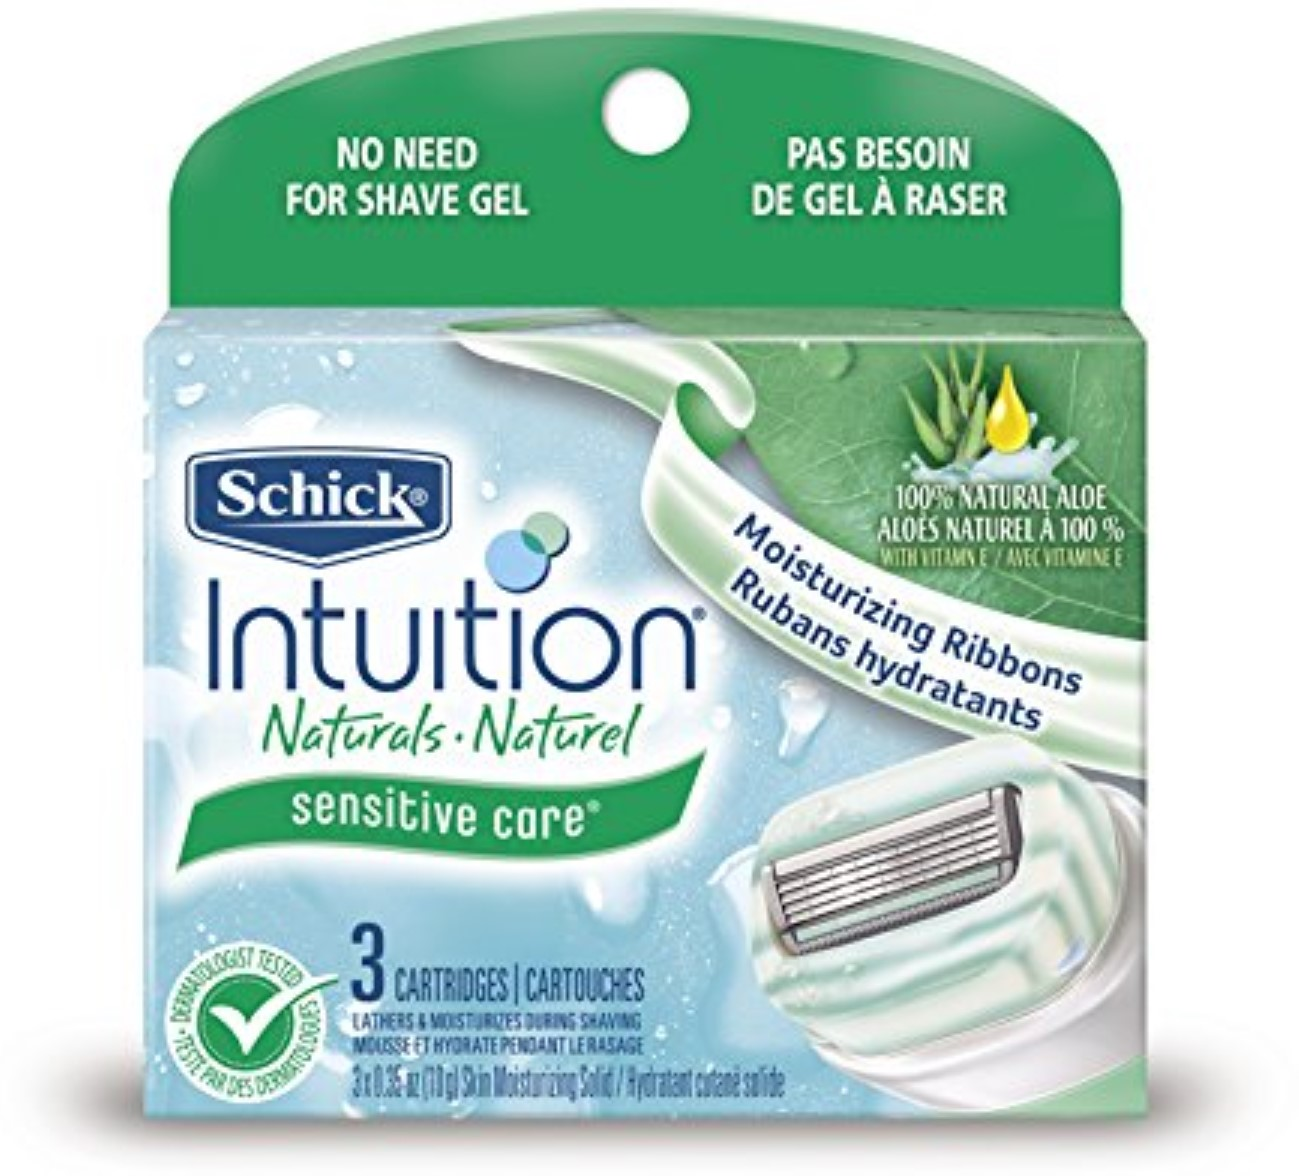 Schick Intuition Naturals Cartridges, Sensitive Care 3 ea (Pack of 2)